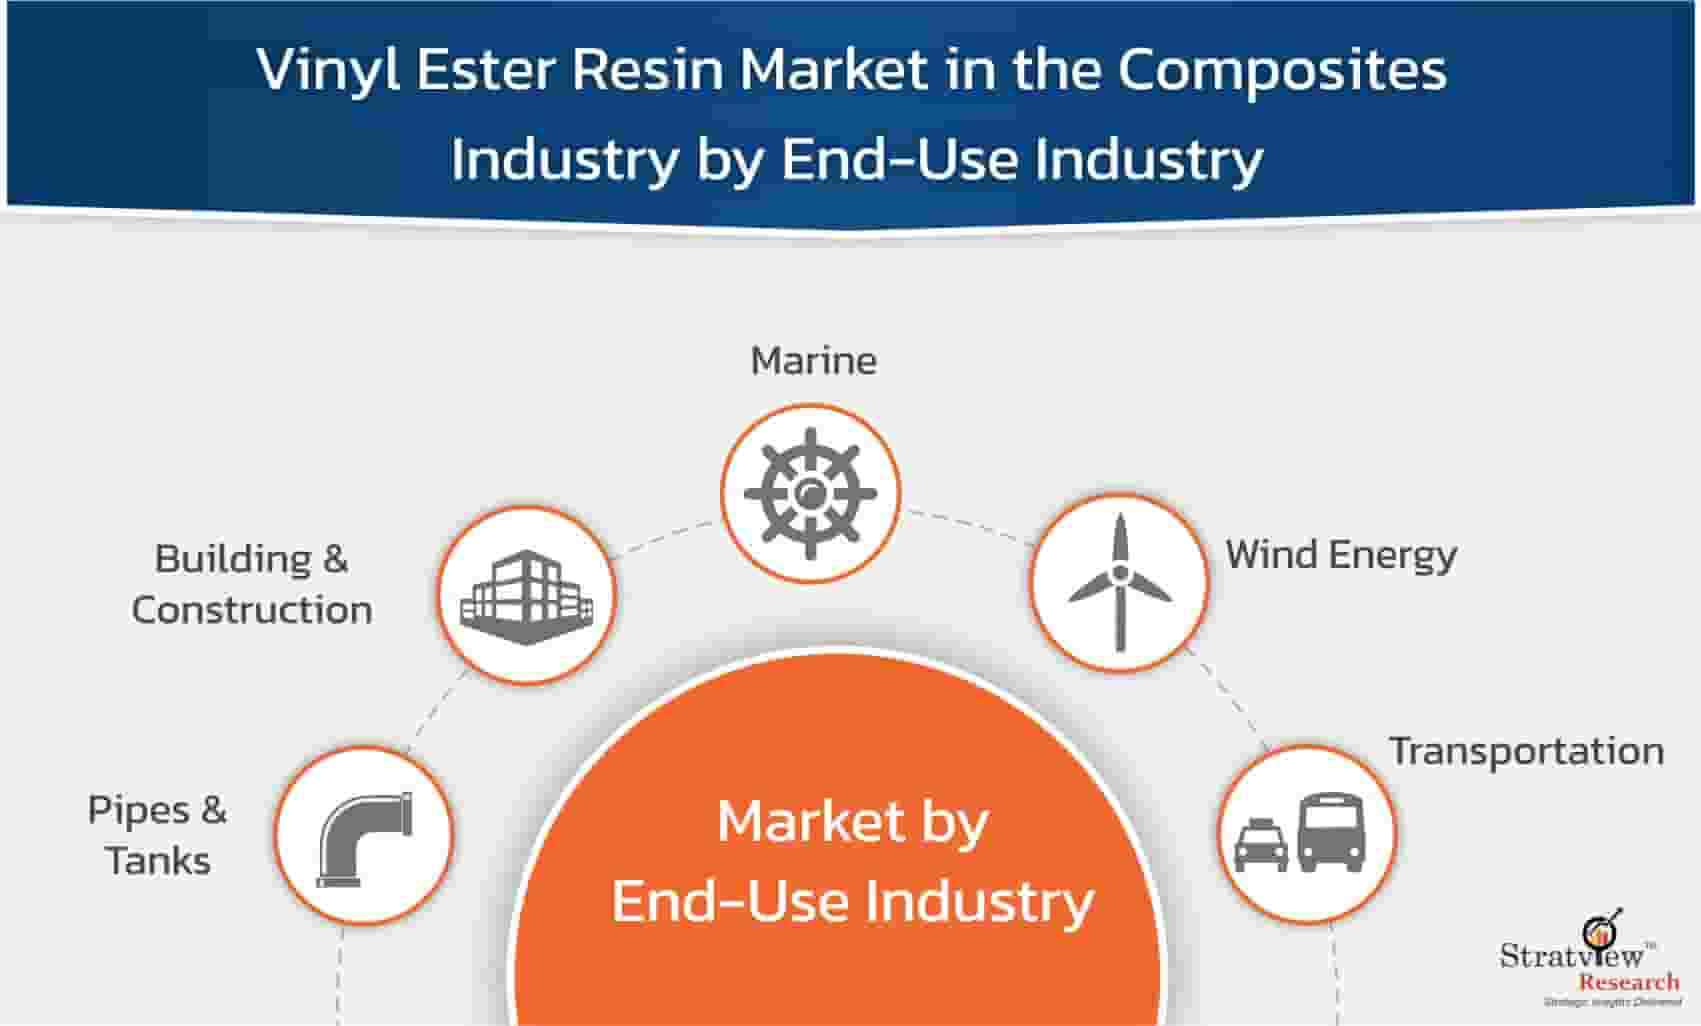 Vinyl-Ester-Resin-Market-in-the-Composites-Industry-By-End-Use